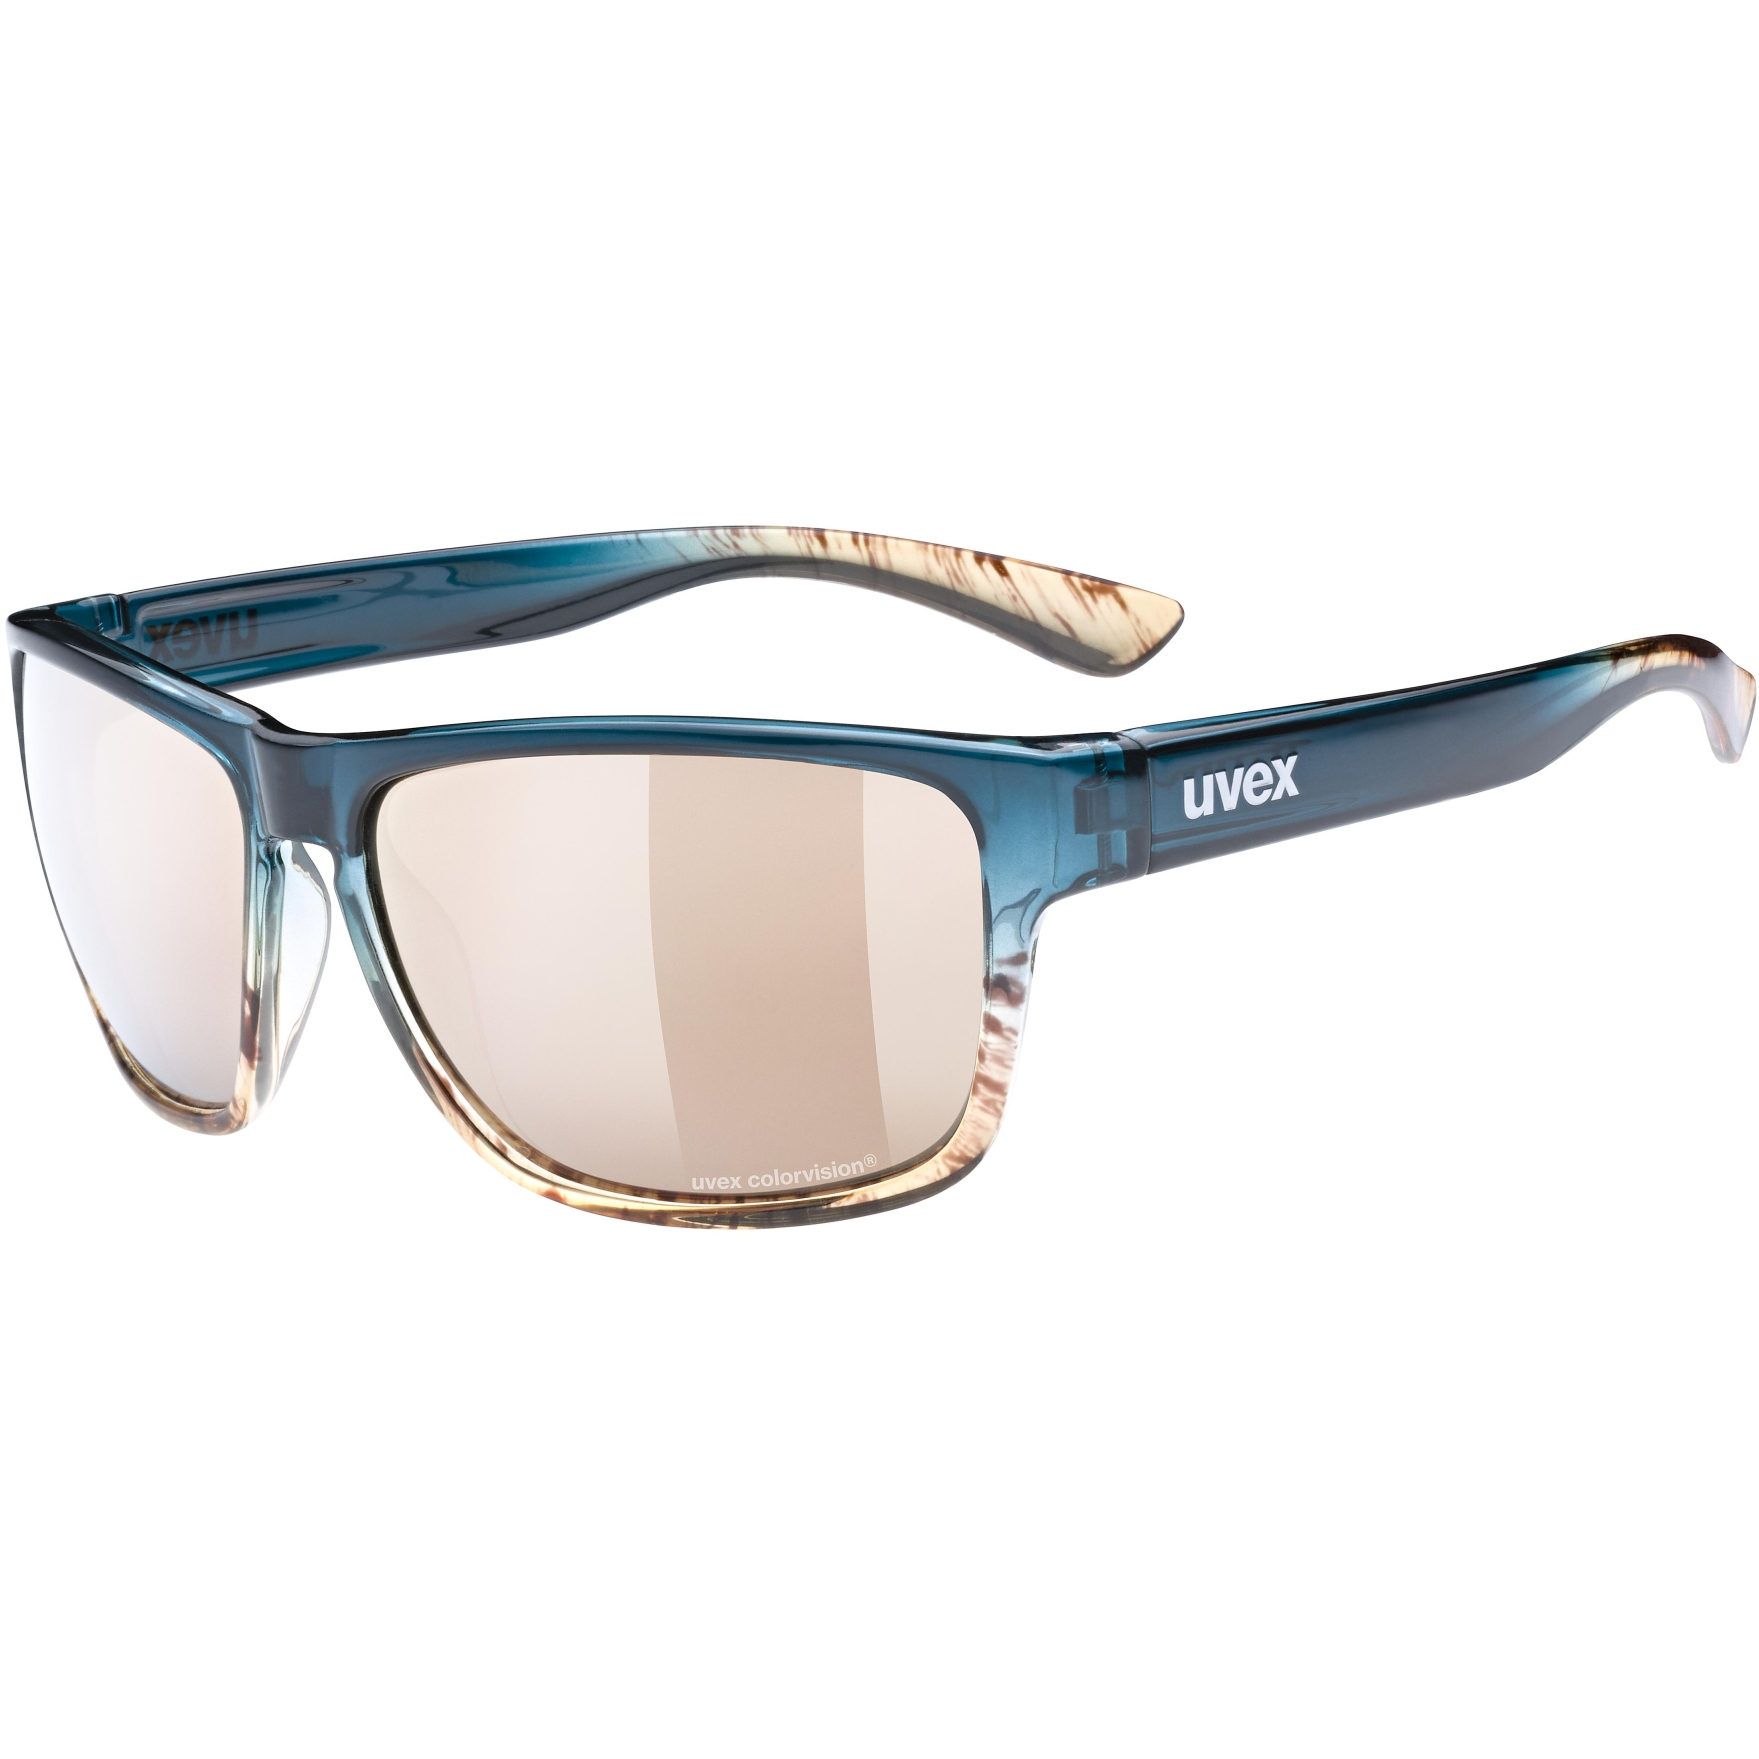 Uvex lgl 36 CV Brille - peacock sand/colorvision mirror champagne